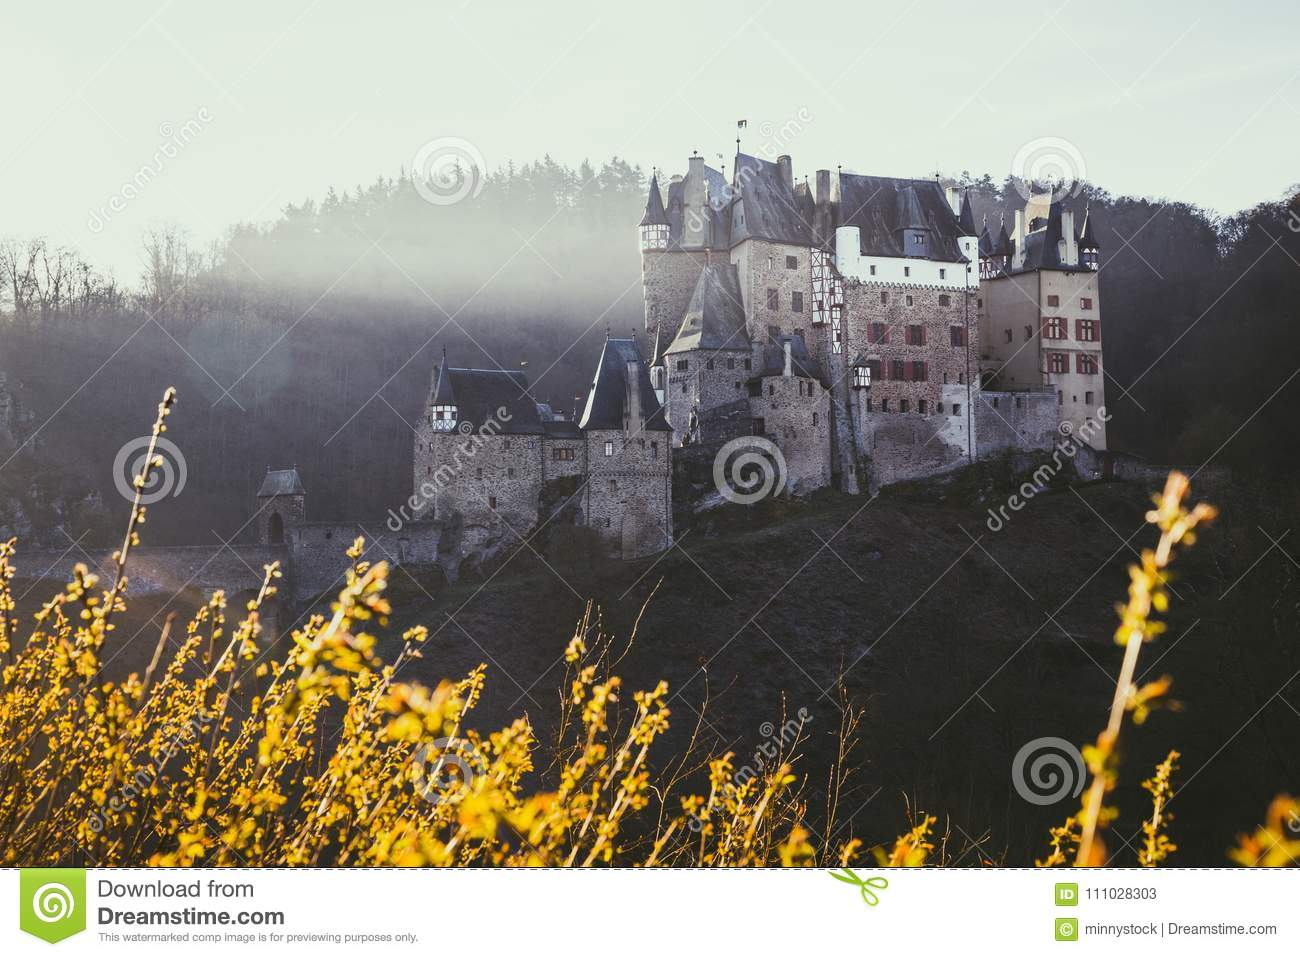 Eltz Castle at sunrise, Rheinland-Pfalz, Germany